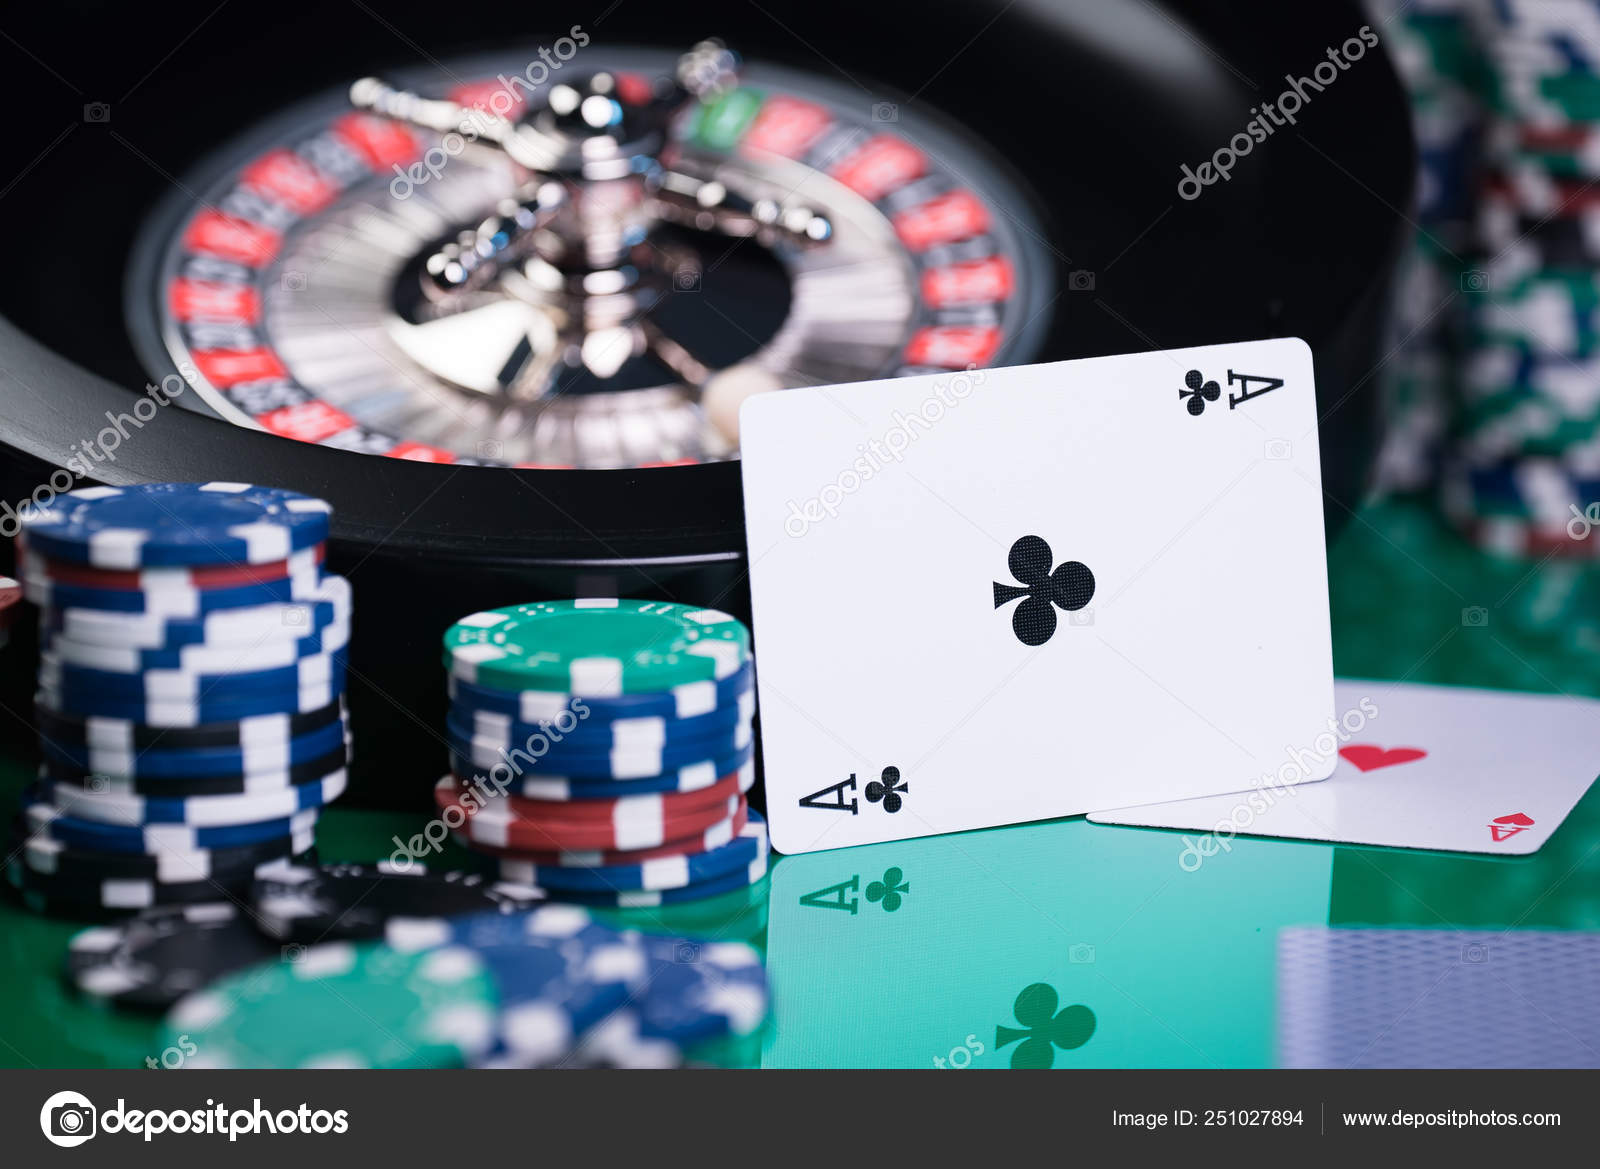 Casino Background Poker Chips Cards Gaming Table Roulette Wheel Motion Stock Photo Image By Aerialmike 251027894